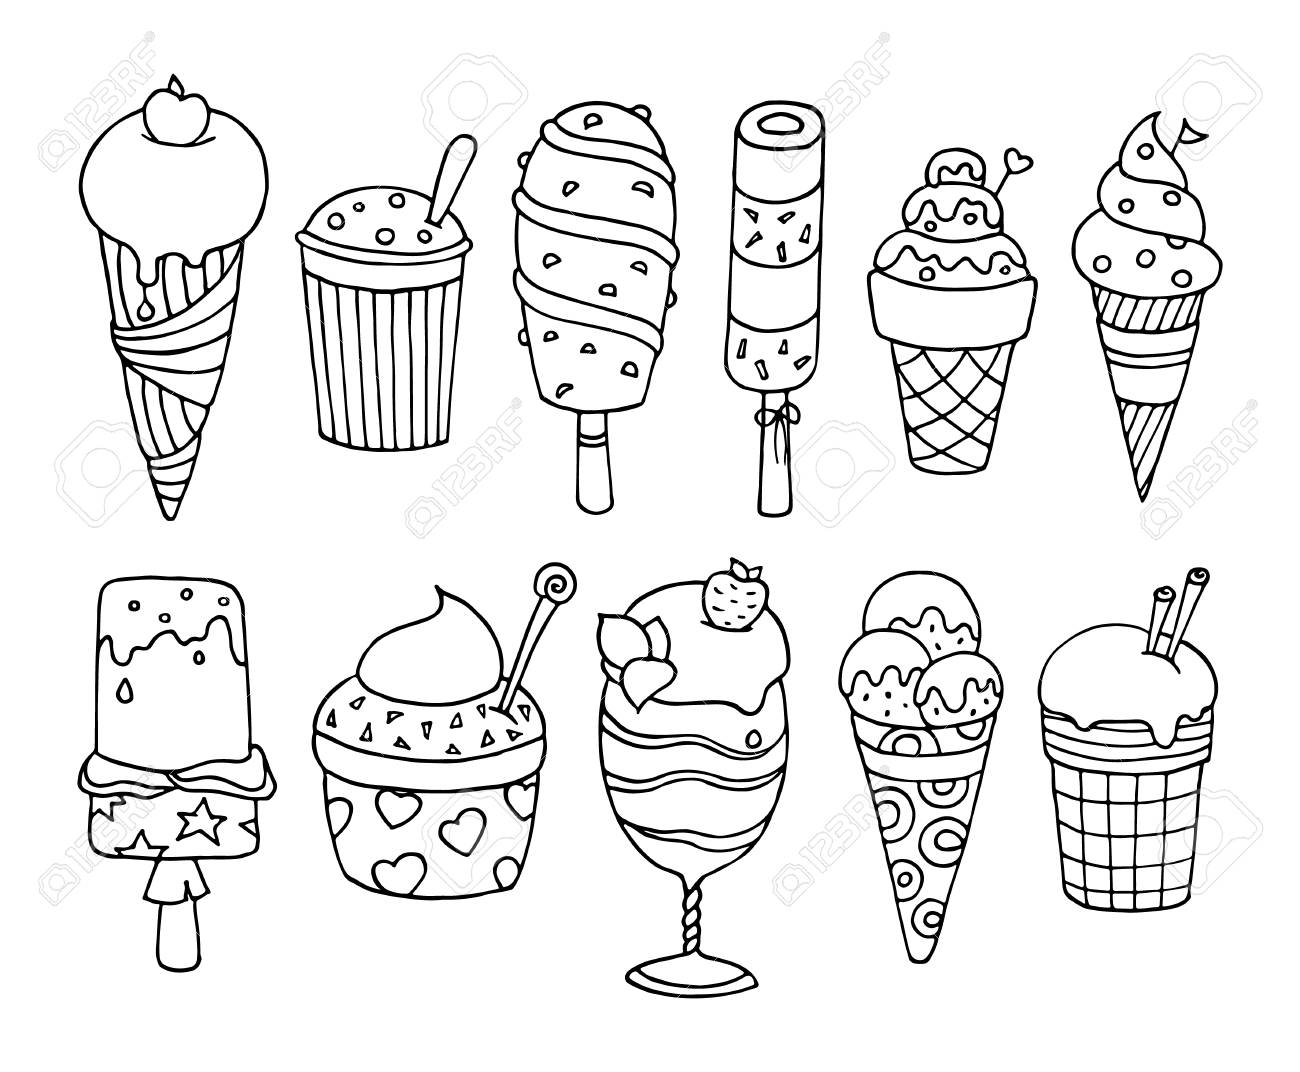 Cute Set Of Tasty Cartoon Ice Cream Collection Of Delicious